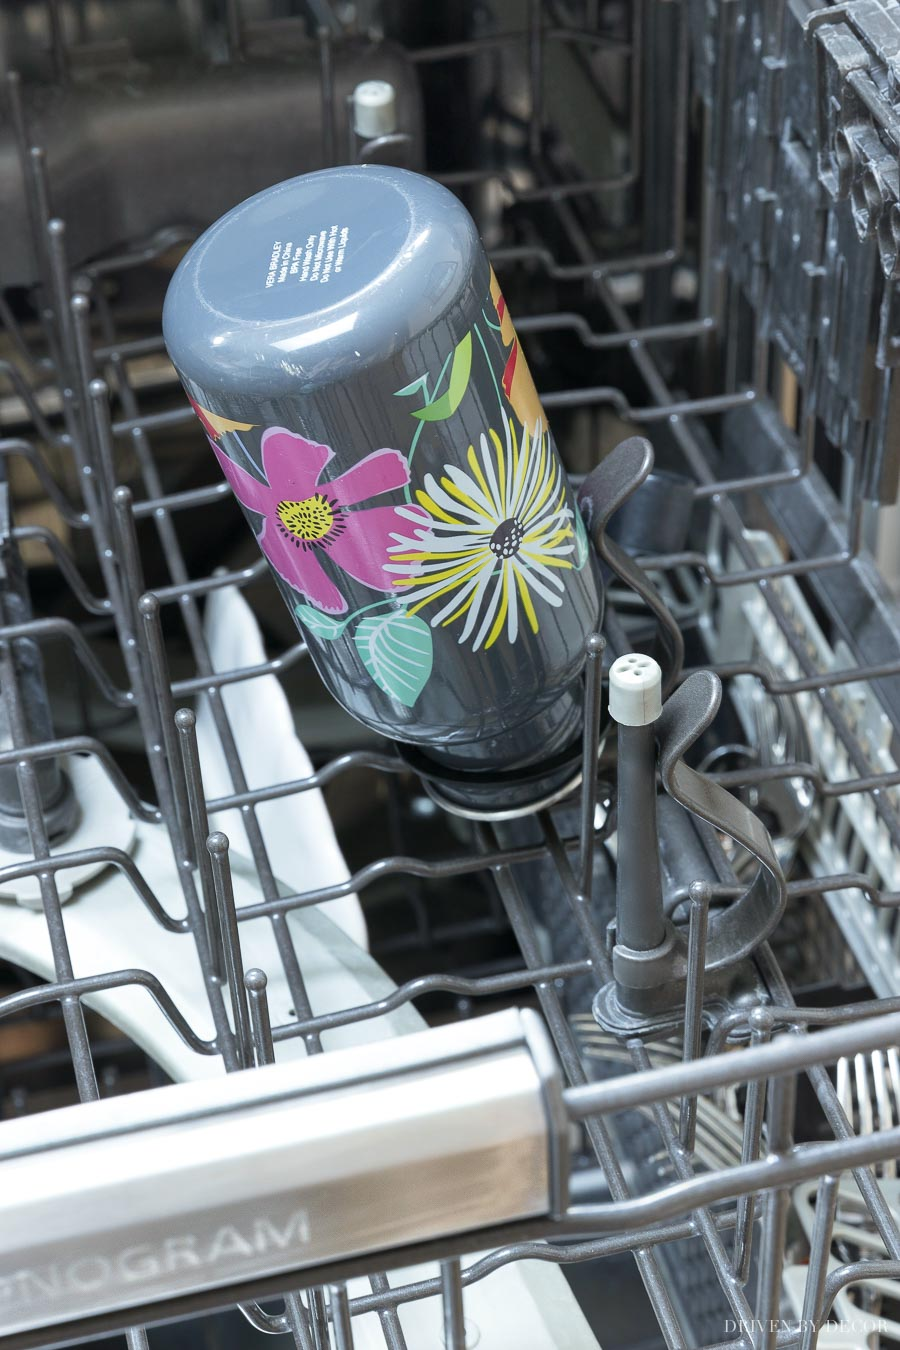 My favorite dishwasher feature ever! Water jets to clean the inside of water bottles!!